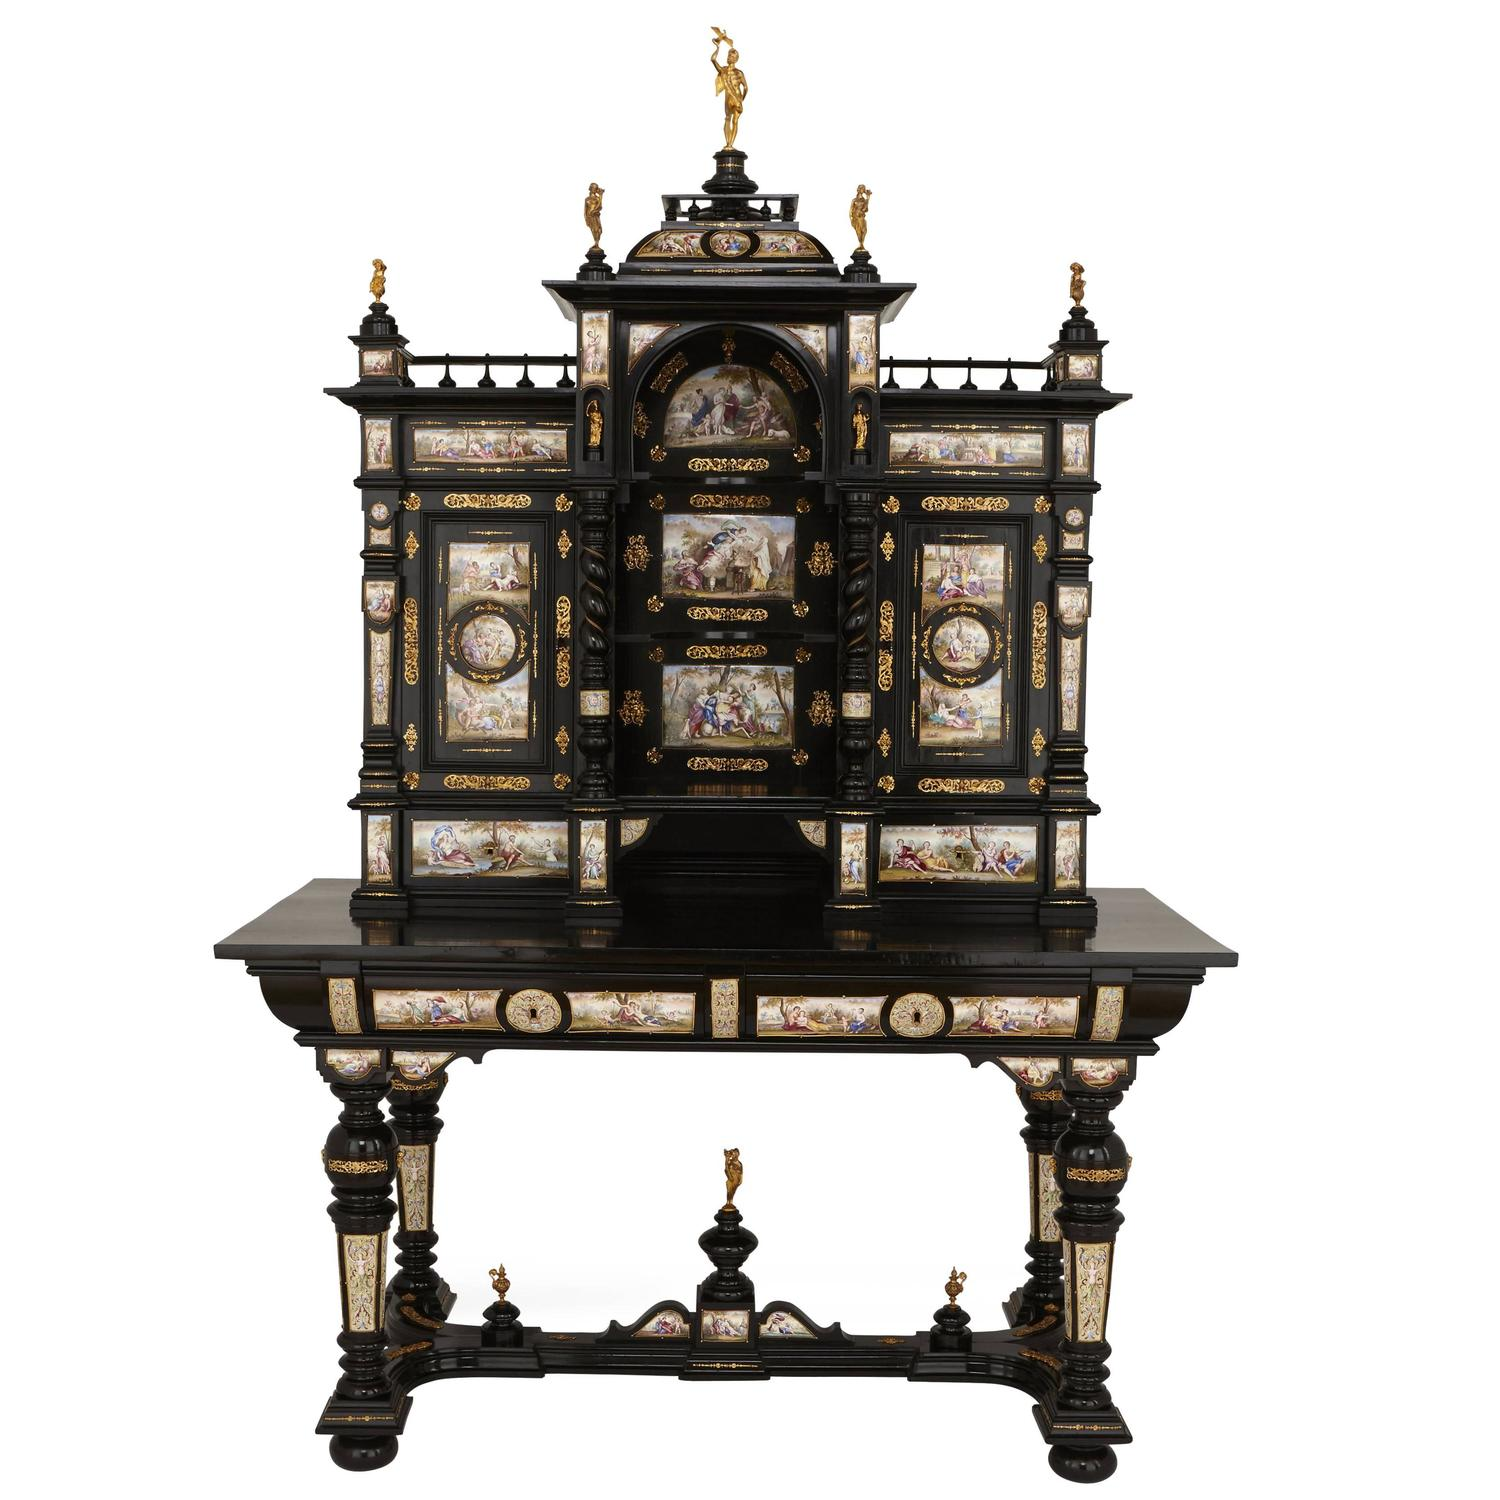 Large ormolu mounted ebonized wood and viennese enamel